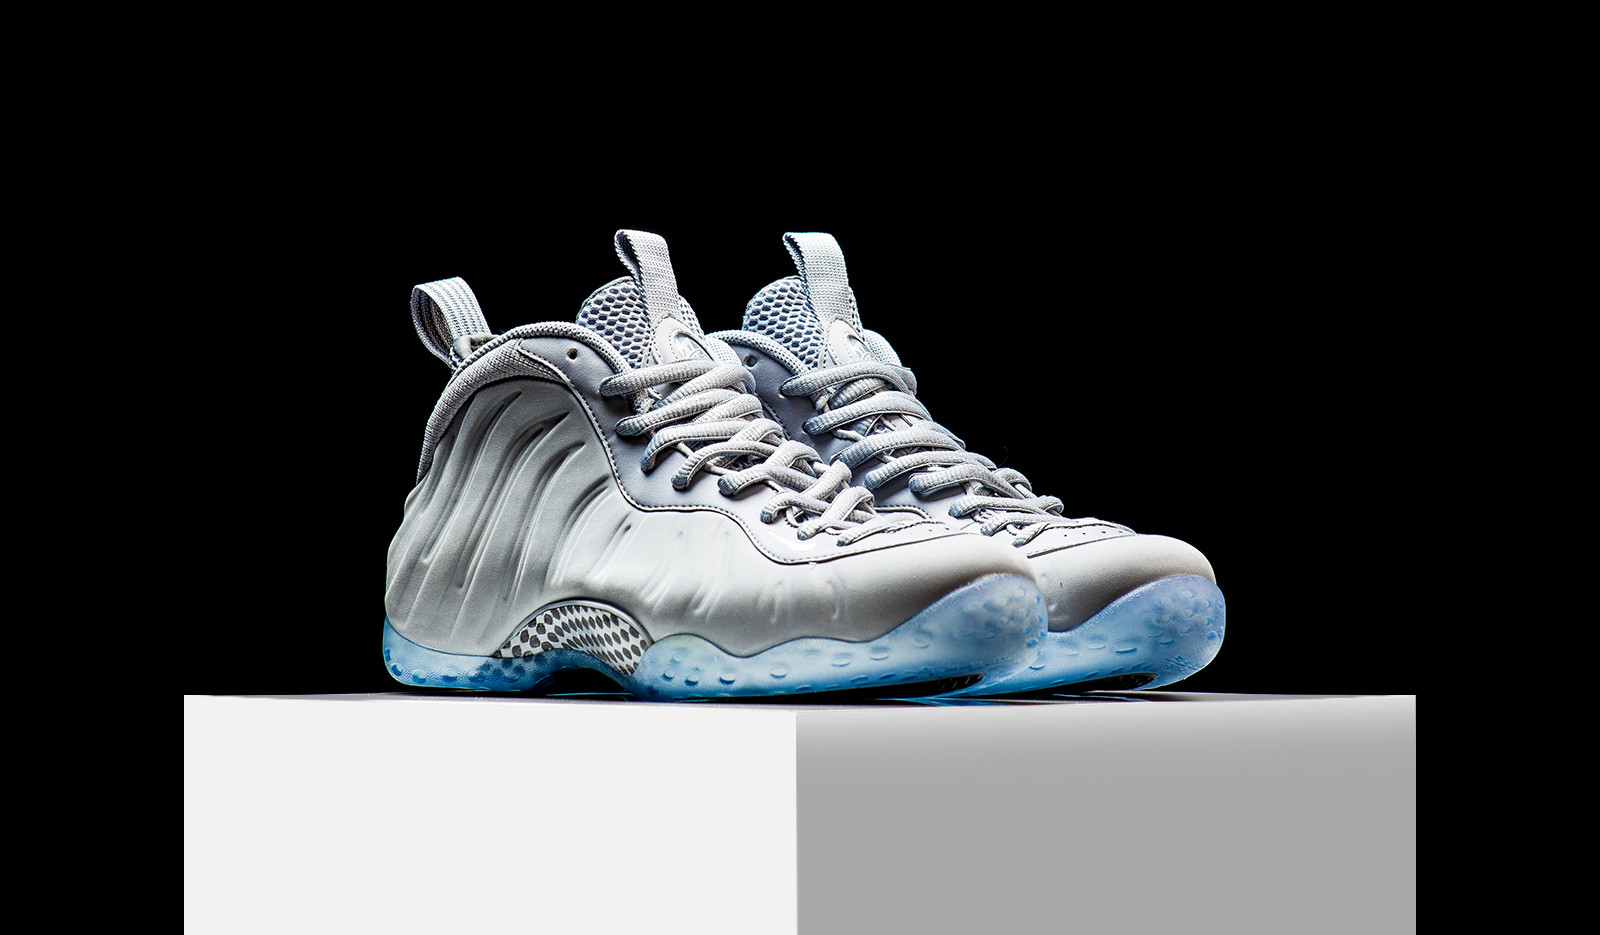 Nike Air Foamposite One Memphis Tigers Racer ...Sole Hello